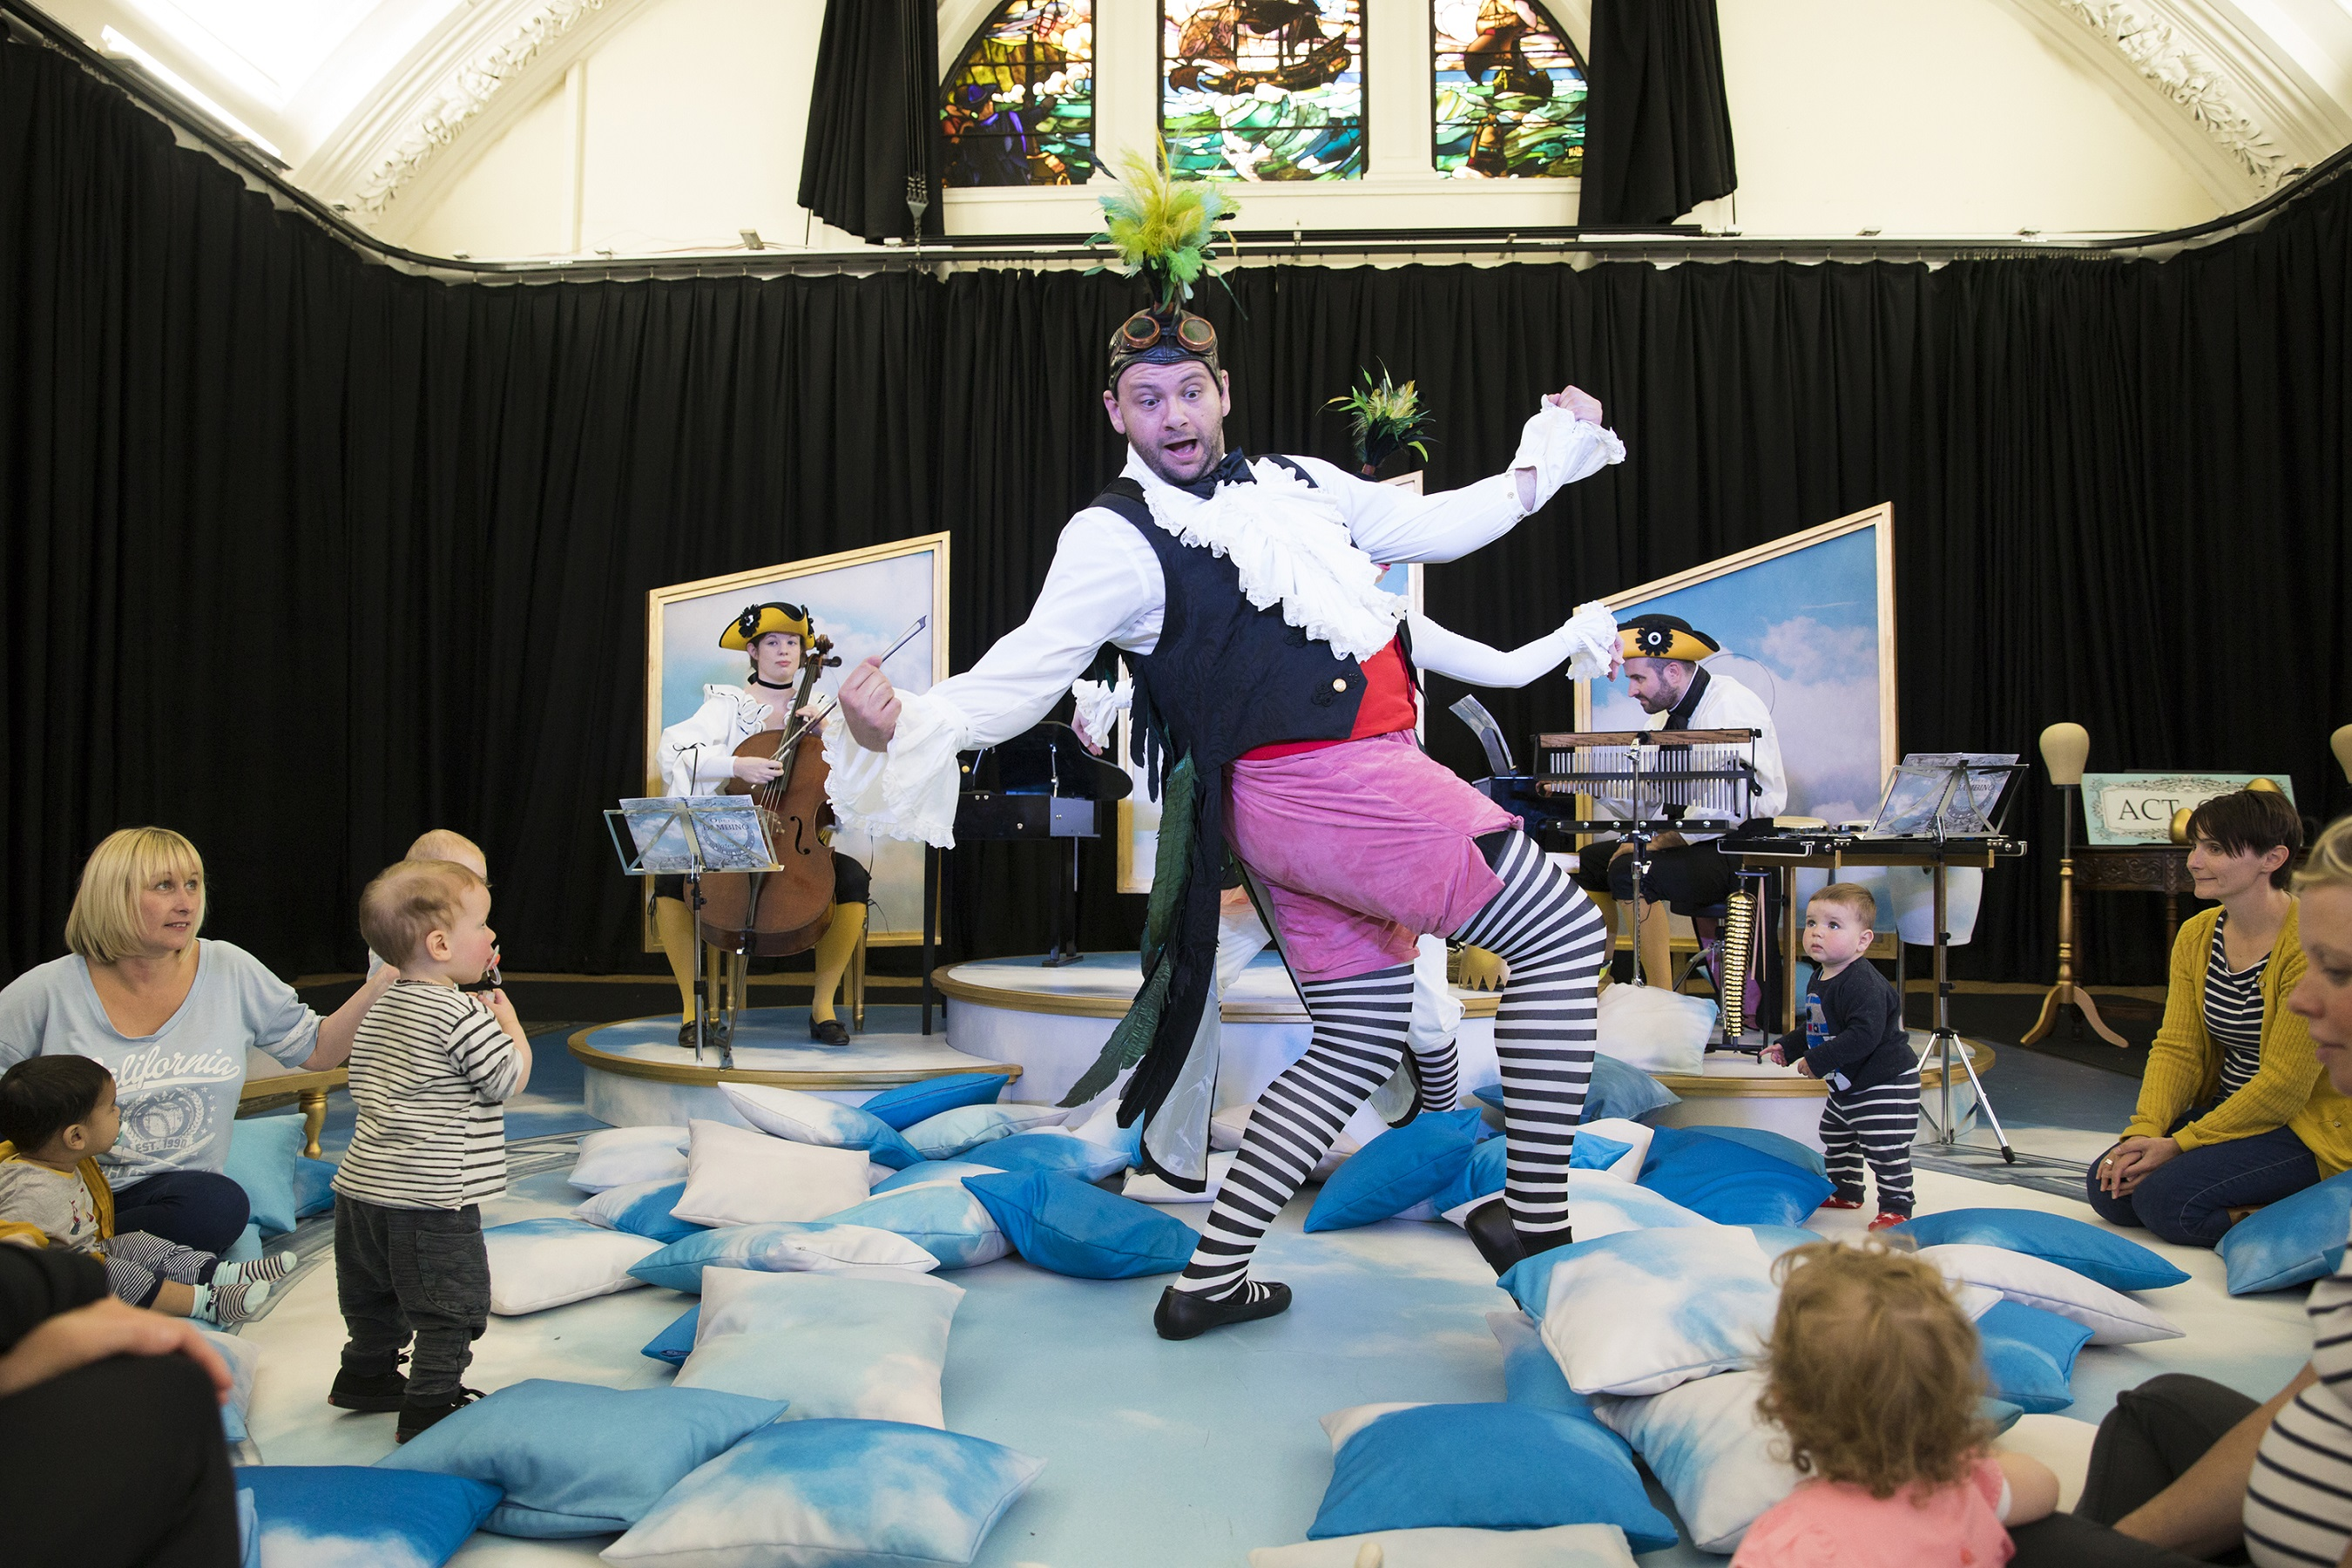 timothy-connor-as-pulcino-in-bambino-scottish-opera-mif-and-improbable-2017-credit-james-glossop.